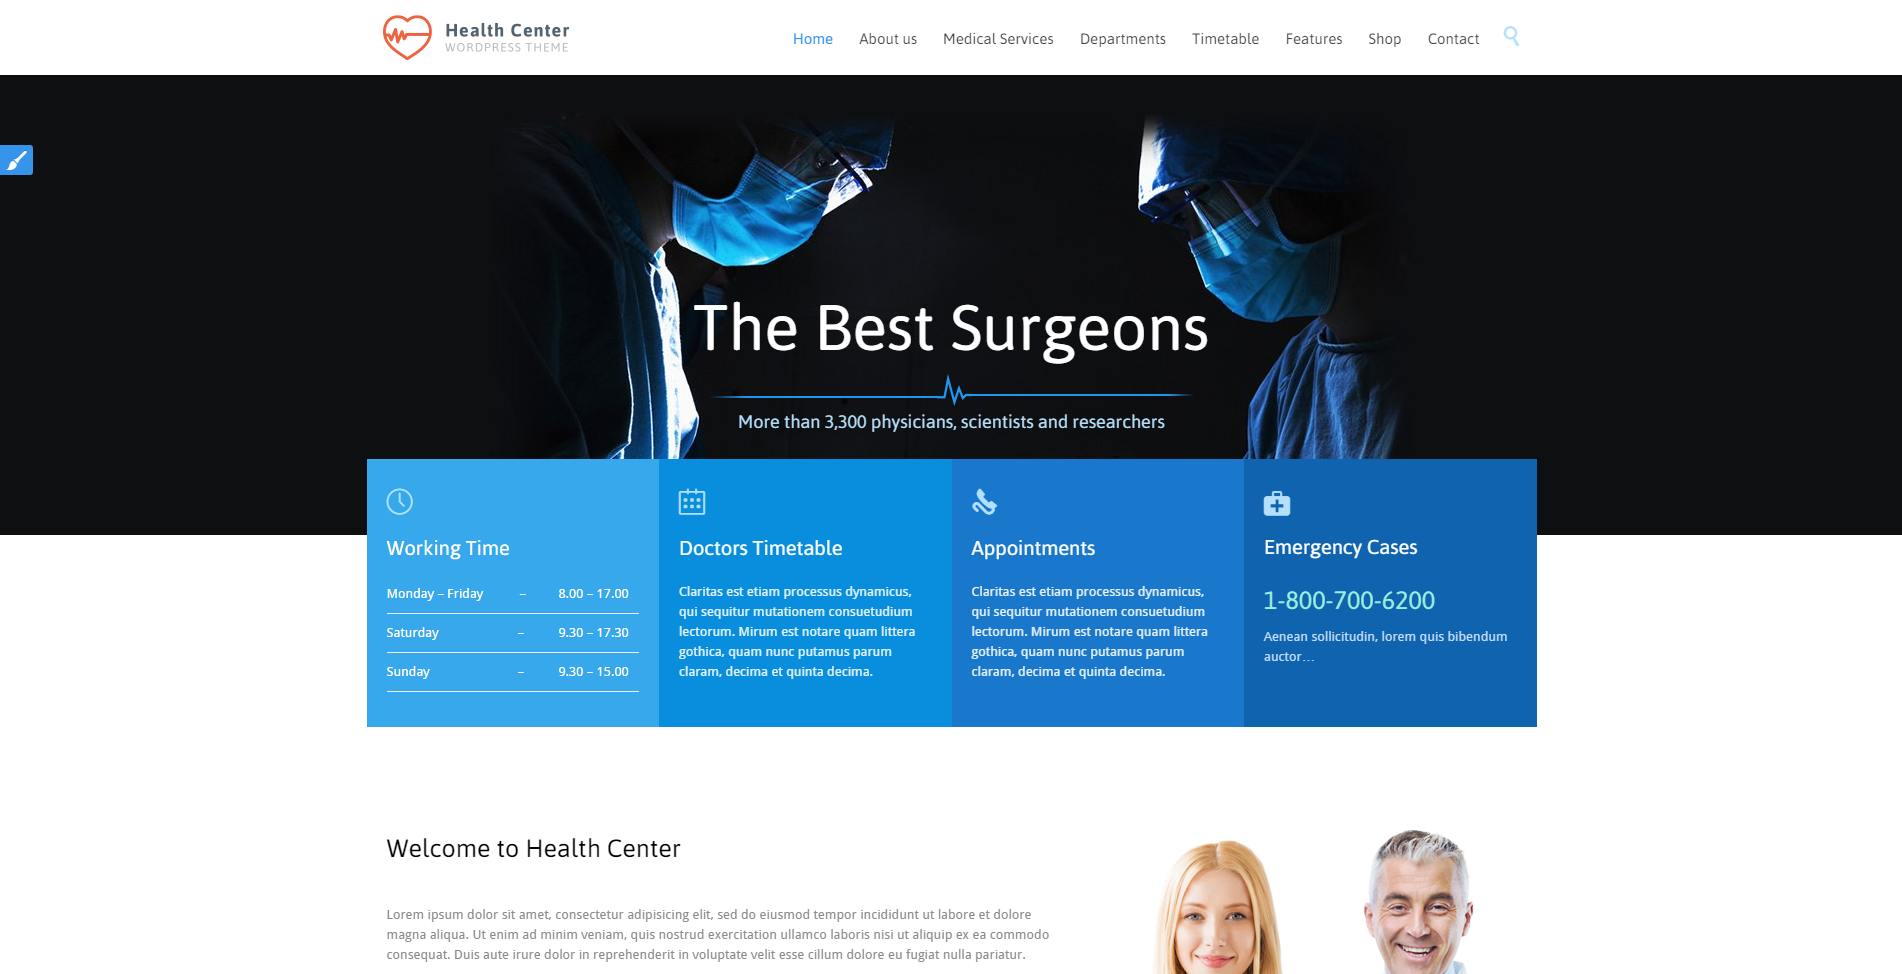 health medical wordpress themes,health care medical wordpress theme-medicare-health-theme-medical-theme-wordpress-health-theme-wordpress-healthcare-theme-wordpress-medical-center-theme-best-medical-wordpress-theme-best-health-wordpress-theme